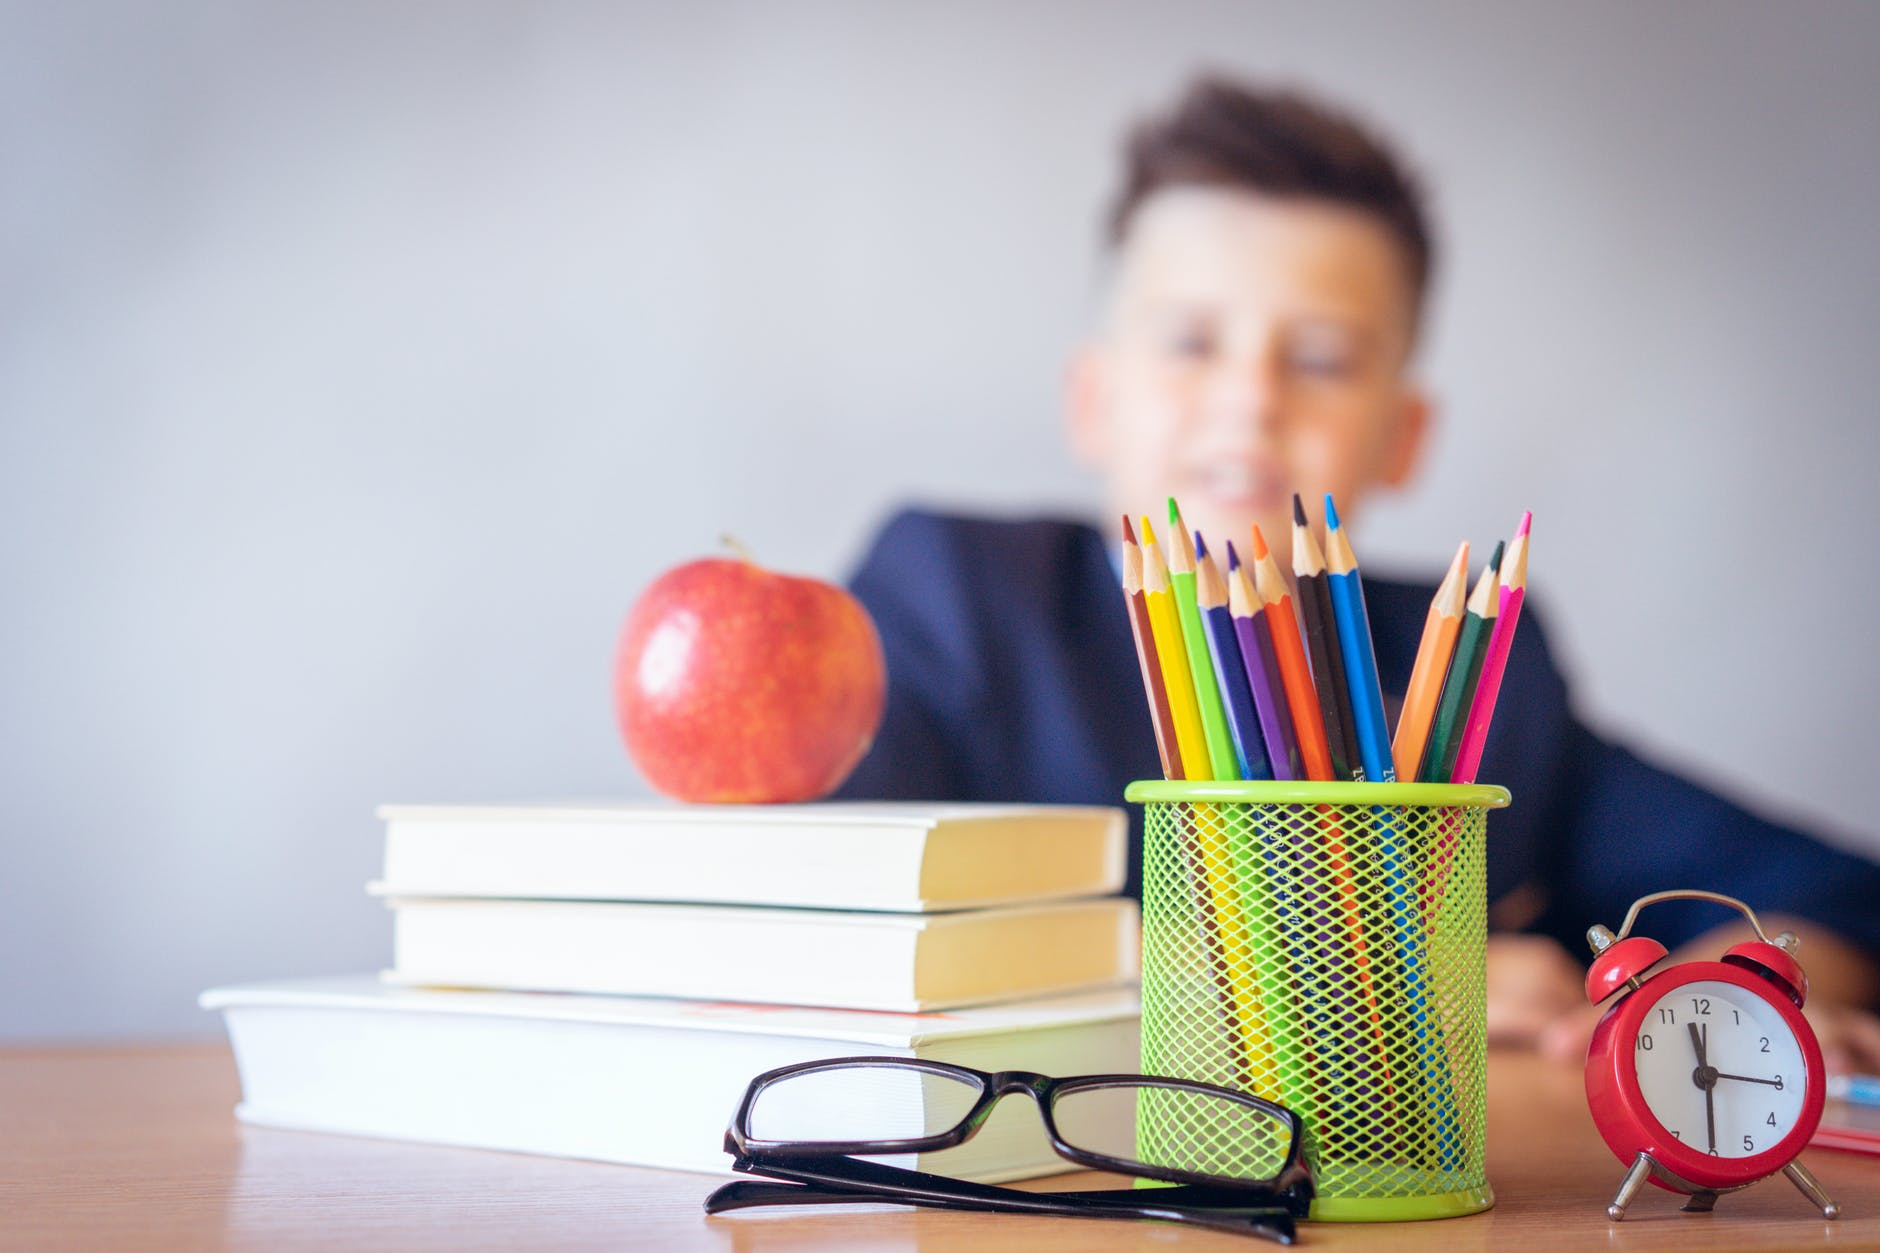 A rectangular image of a desk with a stack of books on the left-hand side, a neon green cup of colored pencils, a red alarm clock, reading glasses, with an out-of-focus silhouette of a masculine-presenting child.